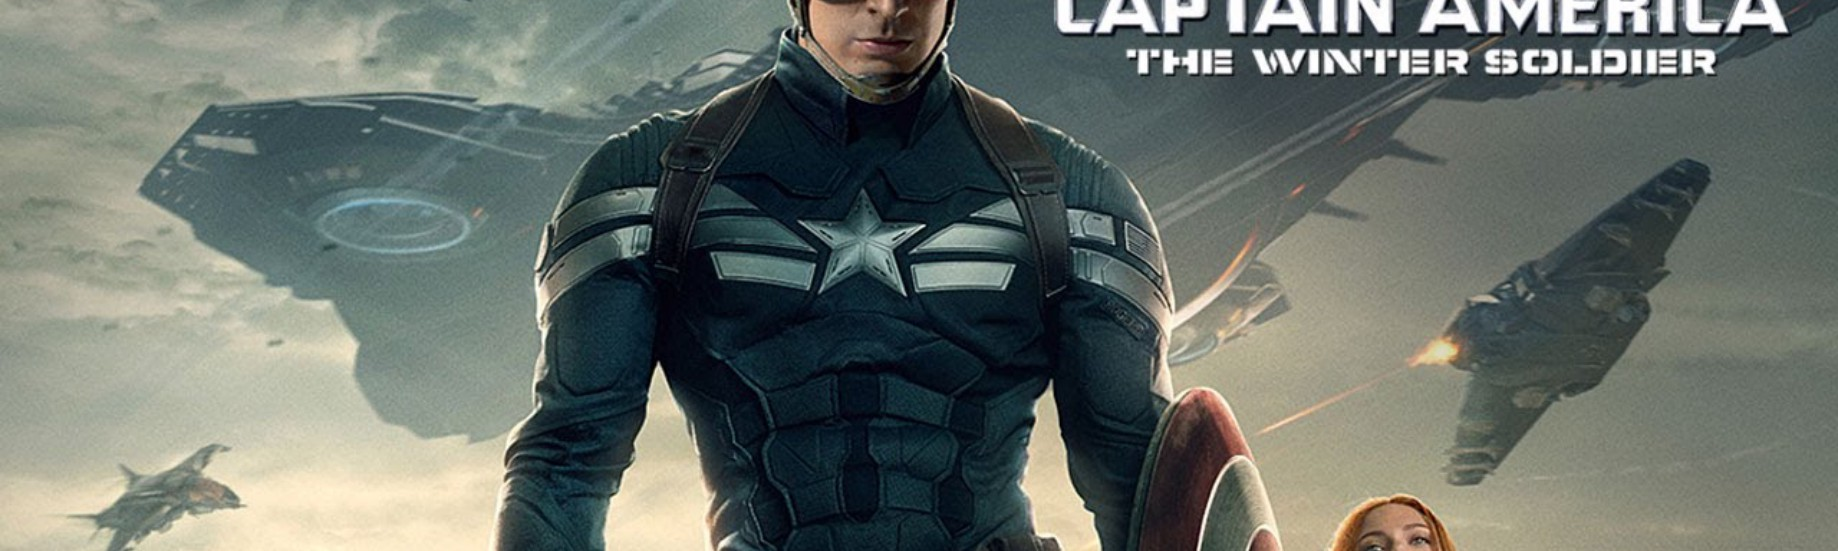 Full Watch Captain America The Winter Soldier 2014 Movies Online 123movies By Berjuang Untuk Kekayaan Jul 2020 Medium